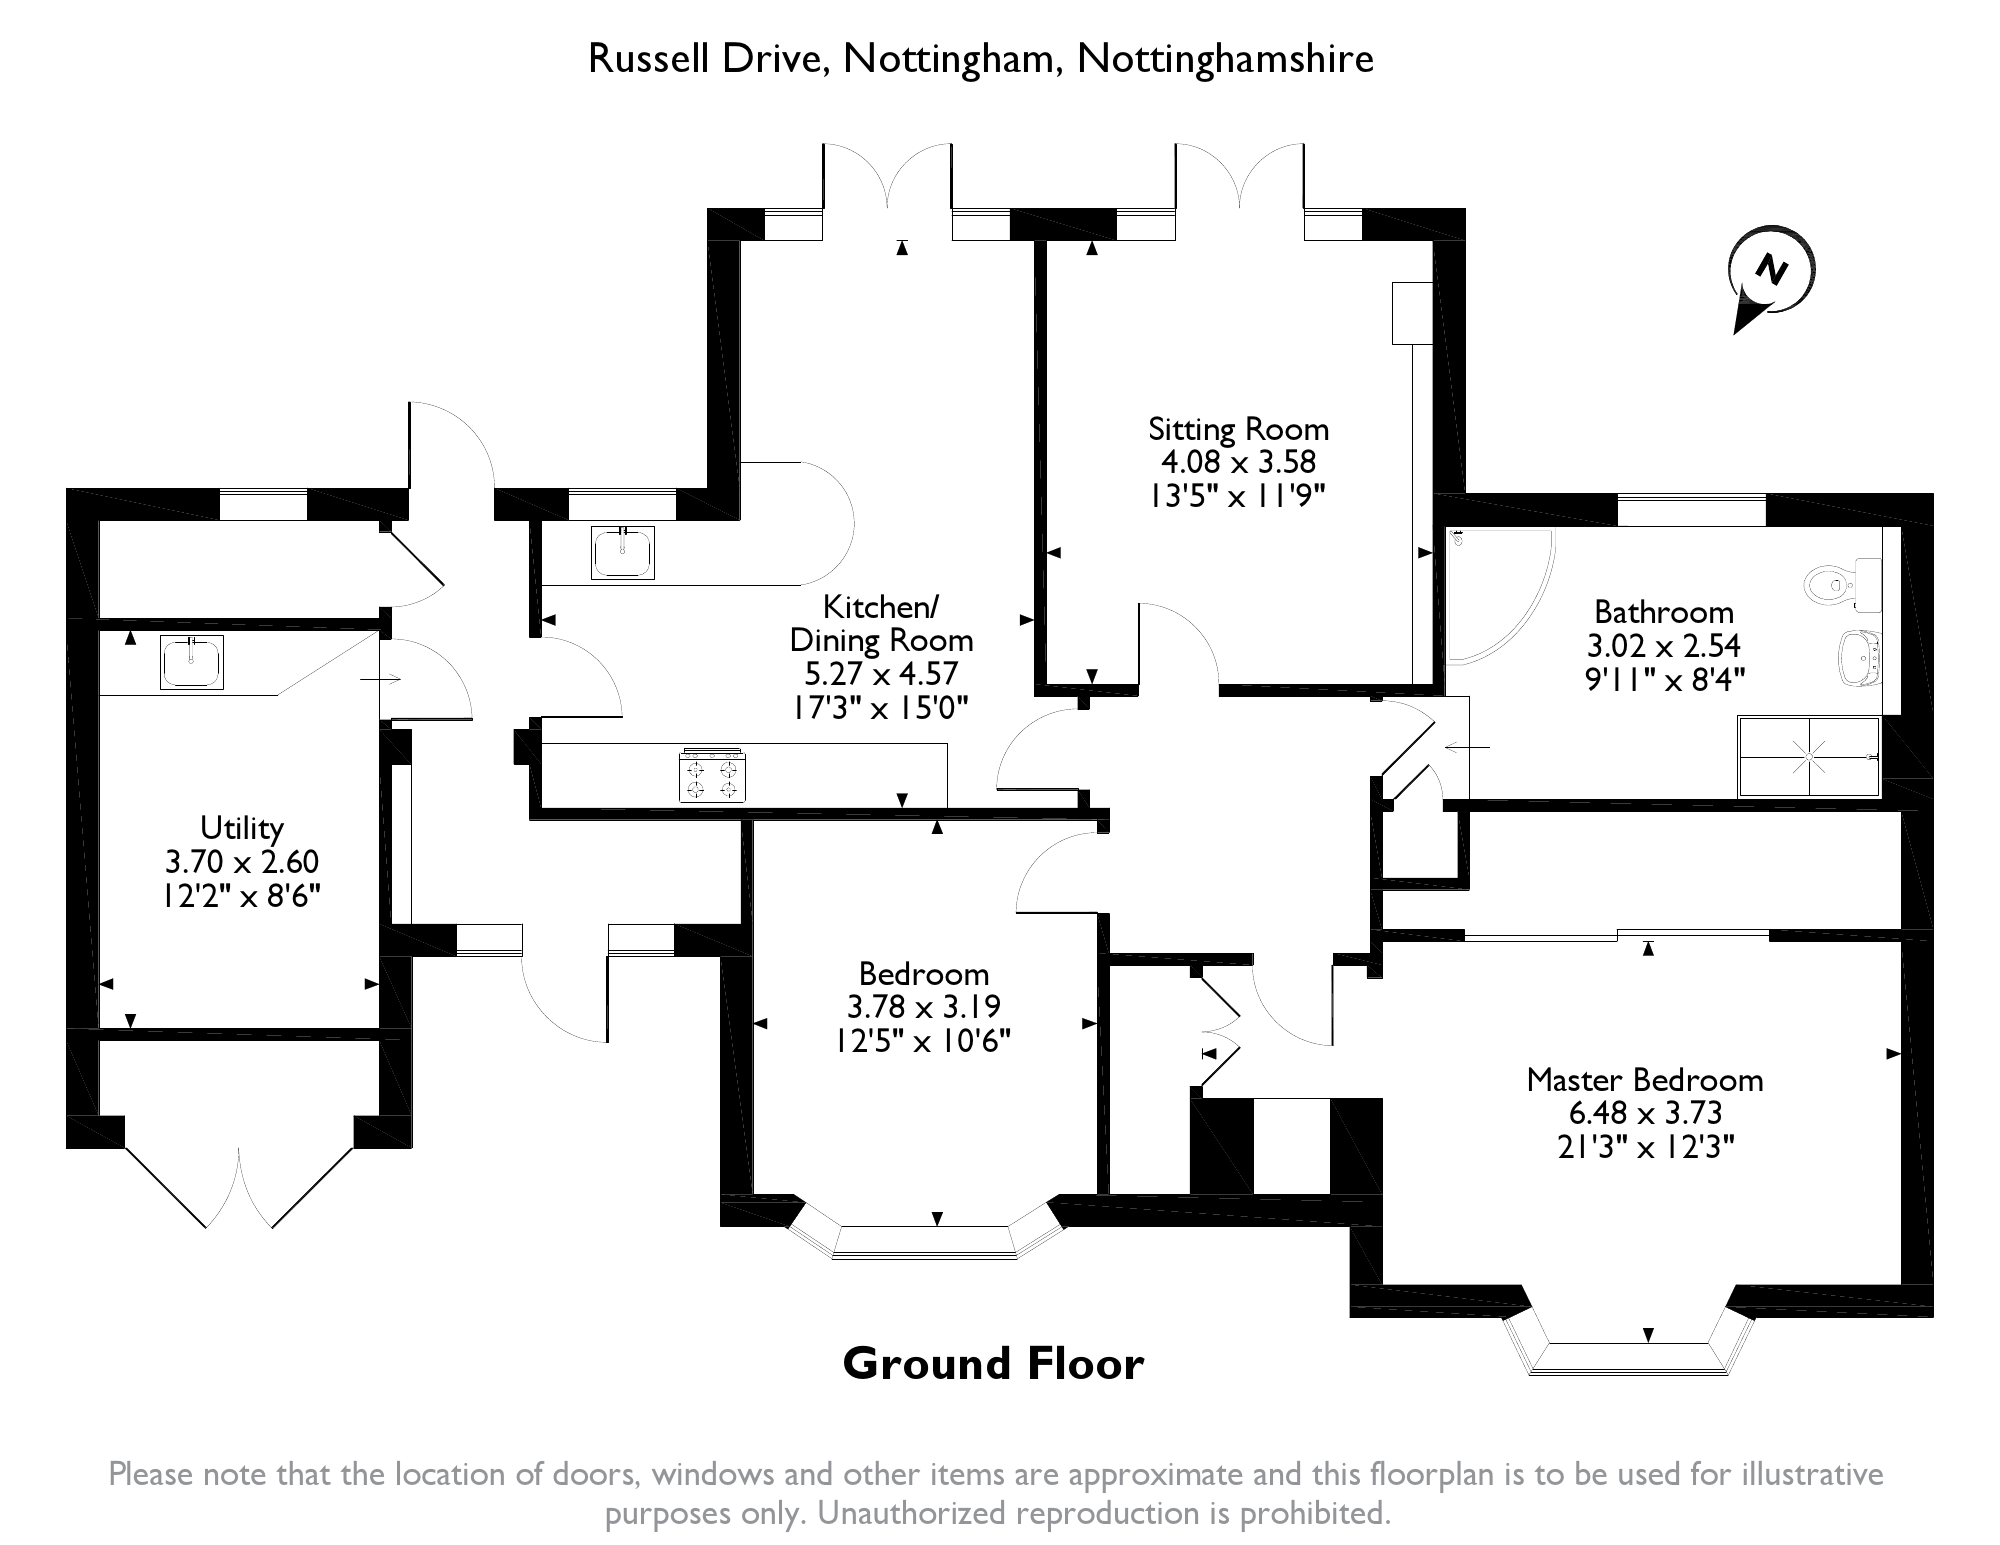 Russell Drive, Nottingham, NG8 floor plan